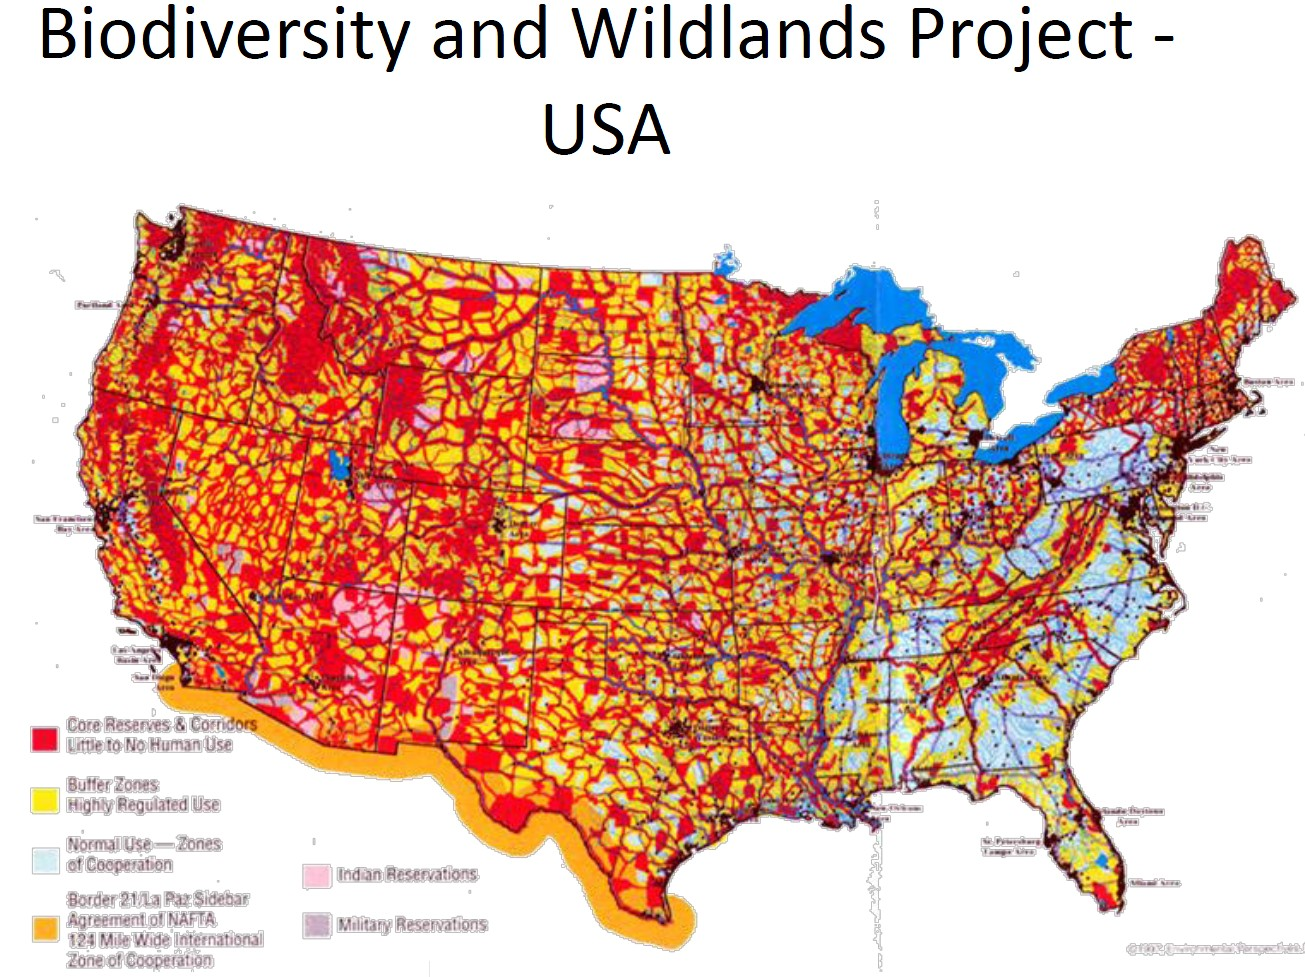 agenda 21 wildlands project map submited images.